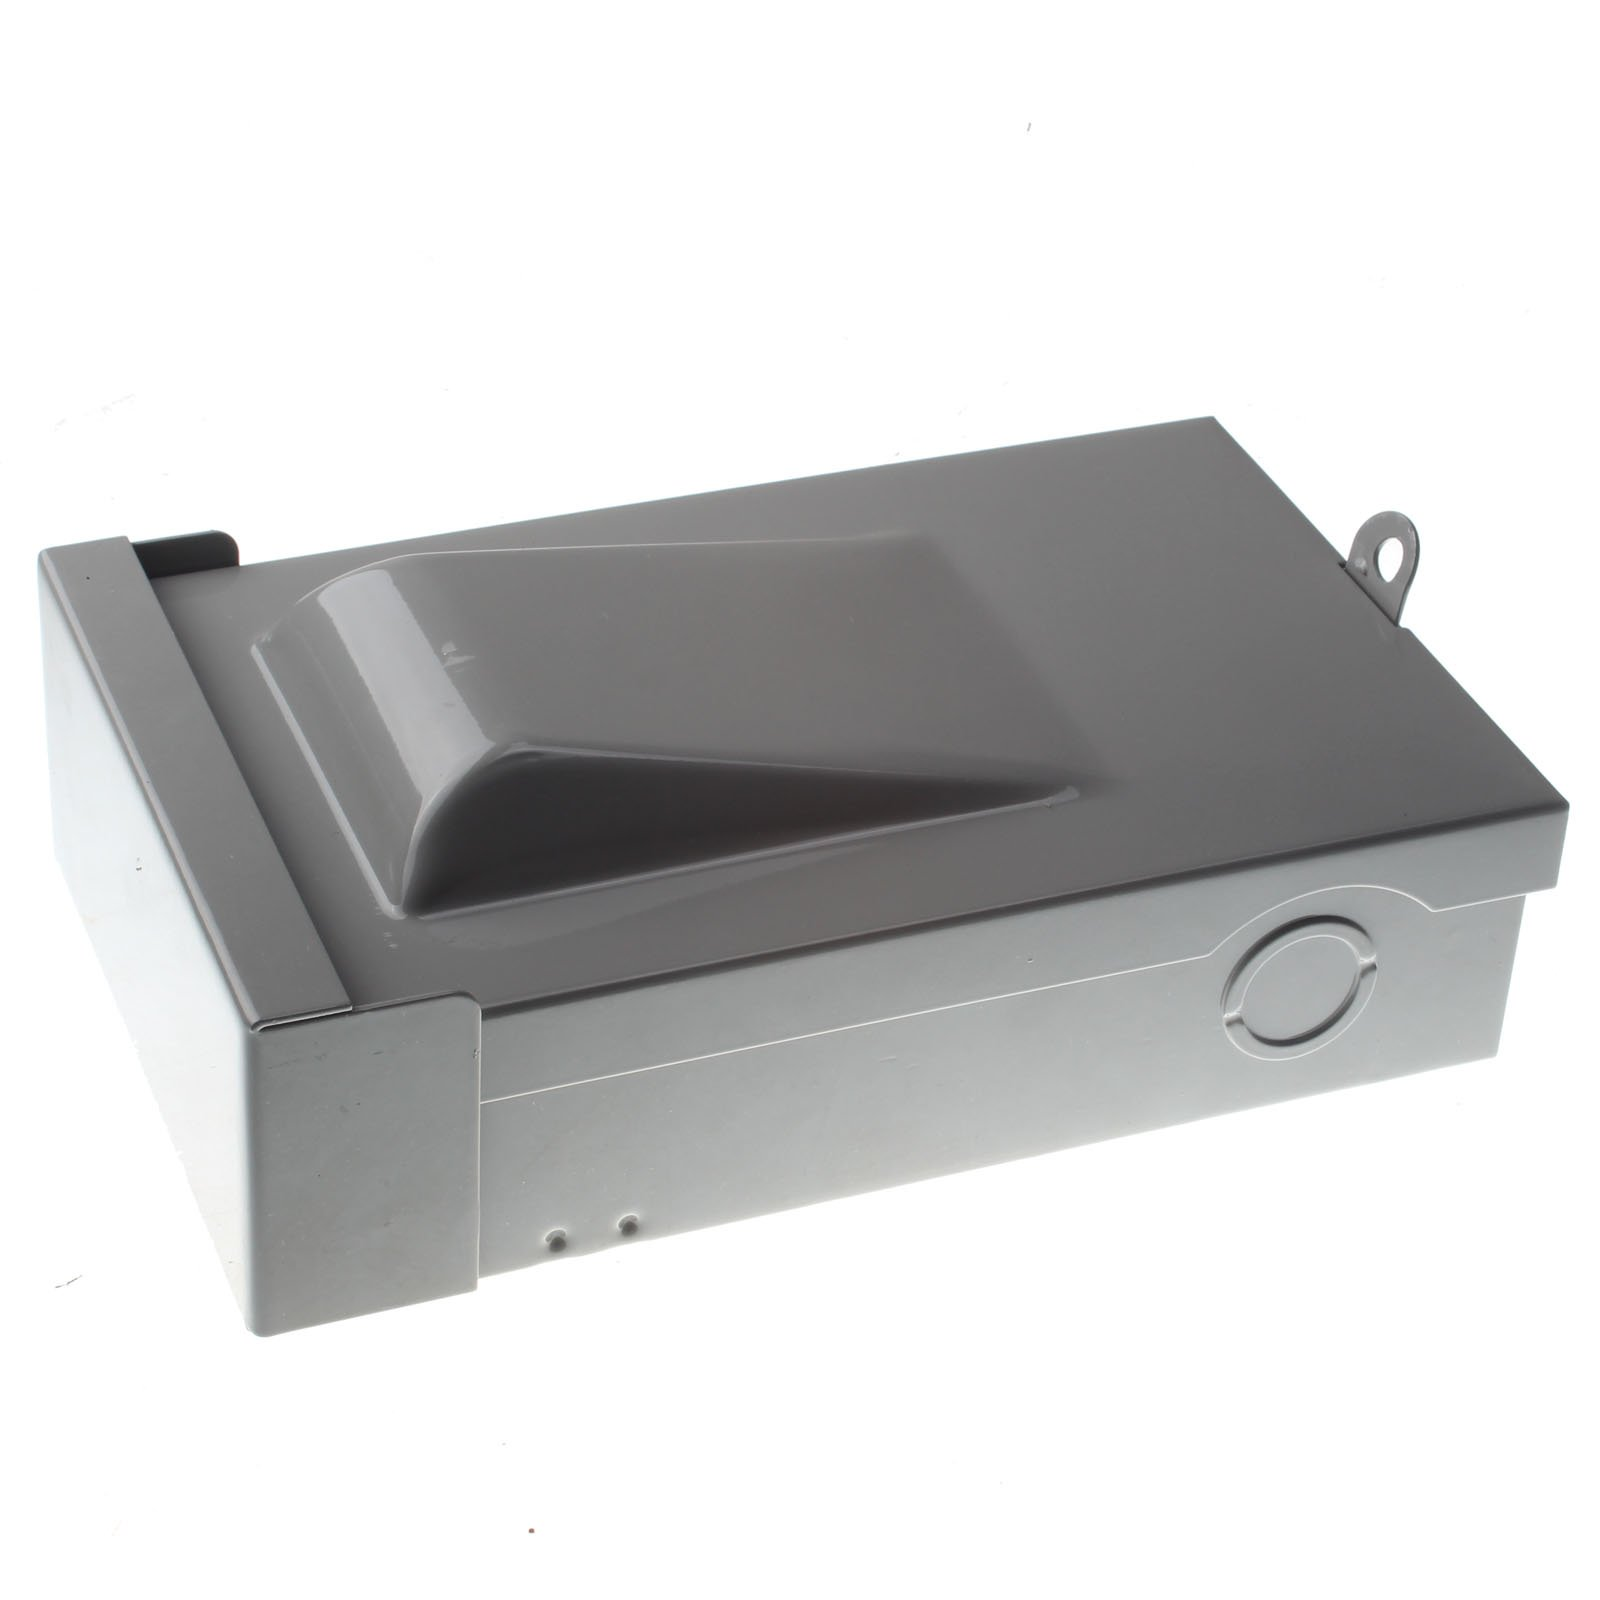 Friday Part FPDS-60A Metallic/Galvanized Steel Enclosure Fused 60 AMP Disconnect Box 240V